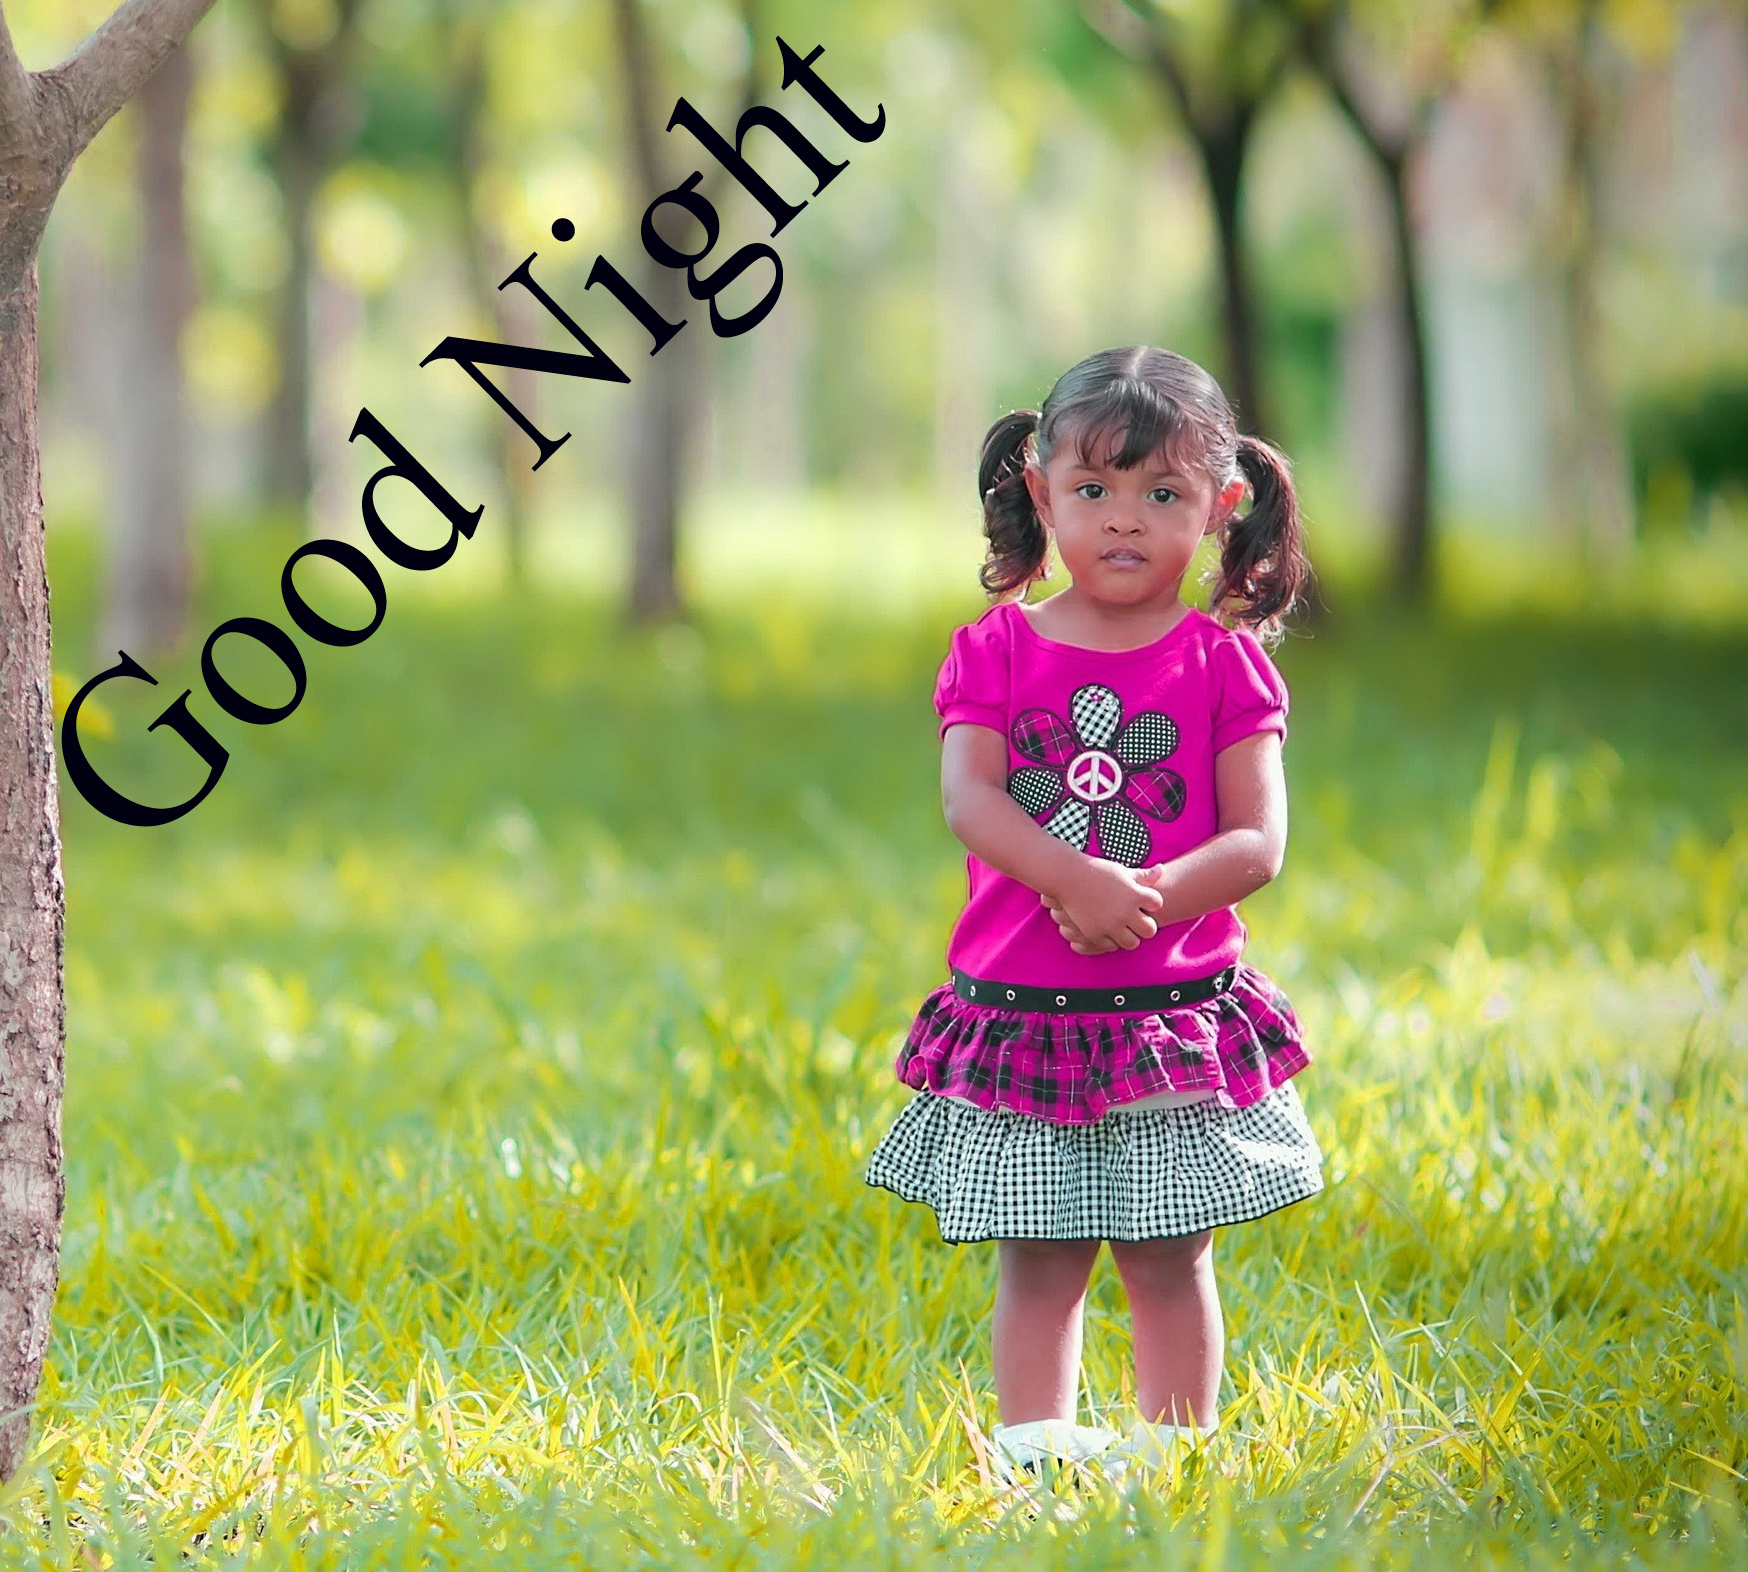 GOOD NIGHT IMAGES WITH CUTE BABY BOYS & GIRLS WALLPAPER PICTURE